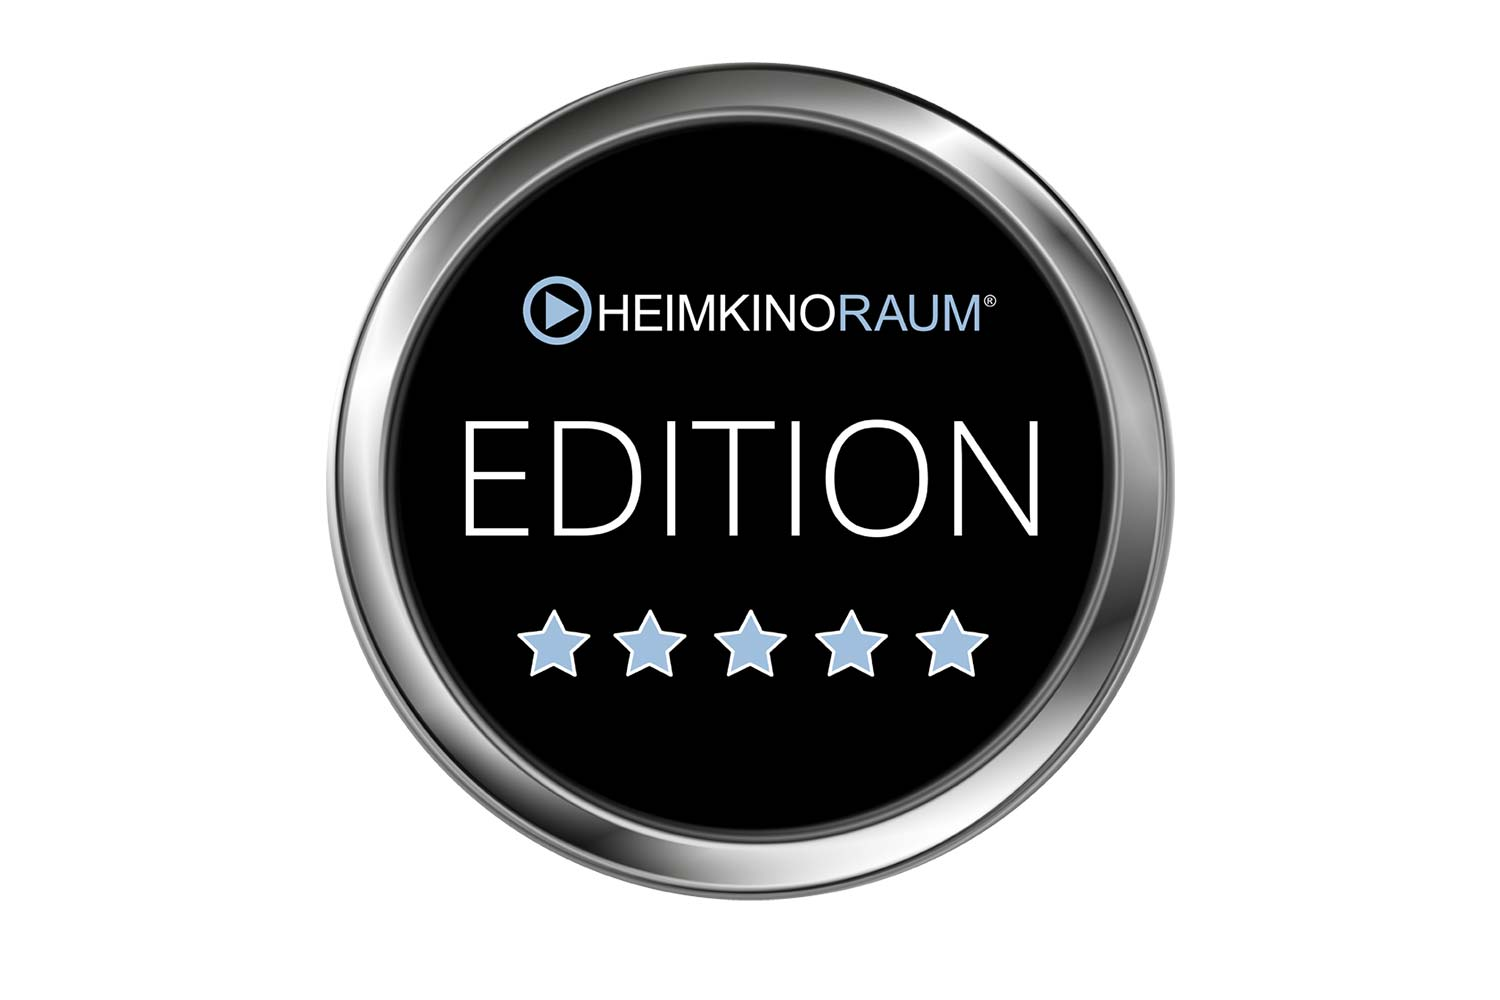 Optoma HD29HLV Beamer - HEIMKINORAUM Edition